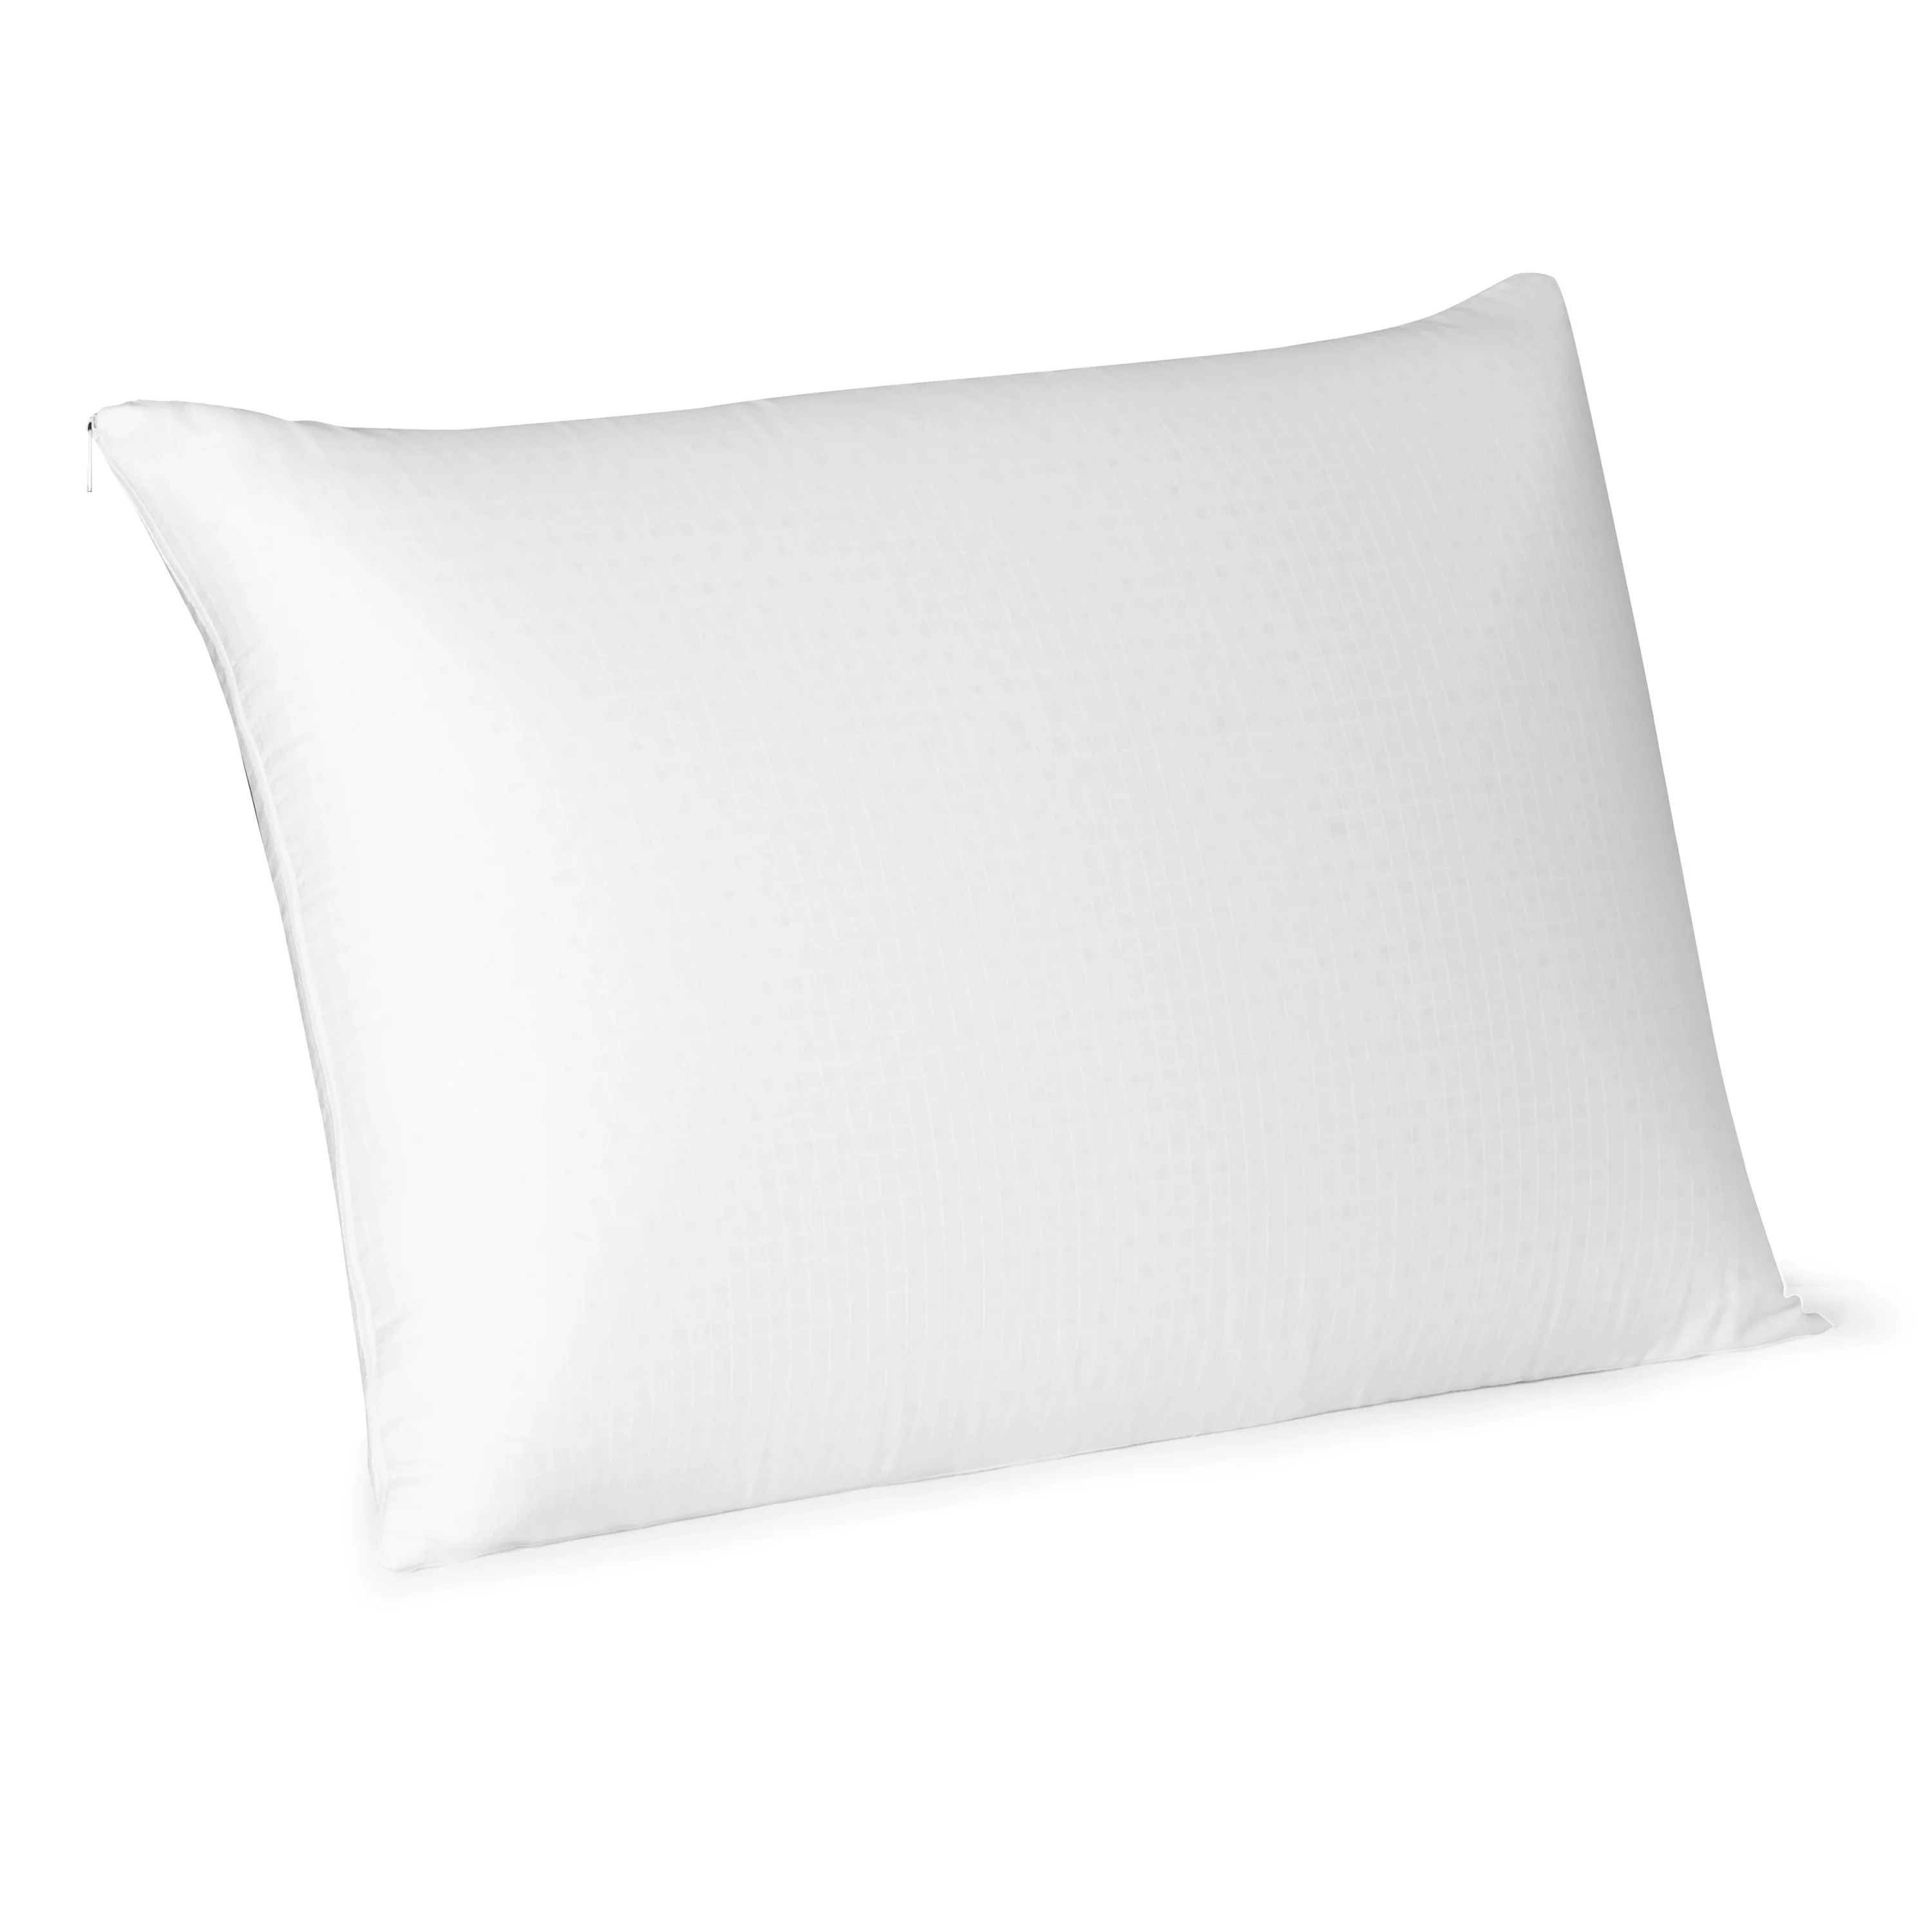 beautyrest latex pillow with removable cover in multiple sizes walmart com